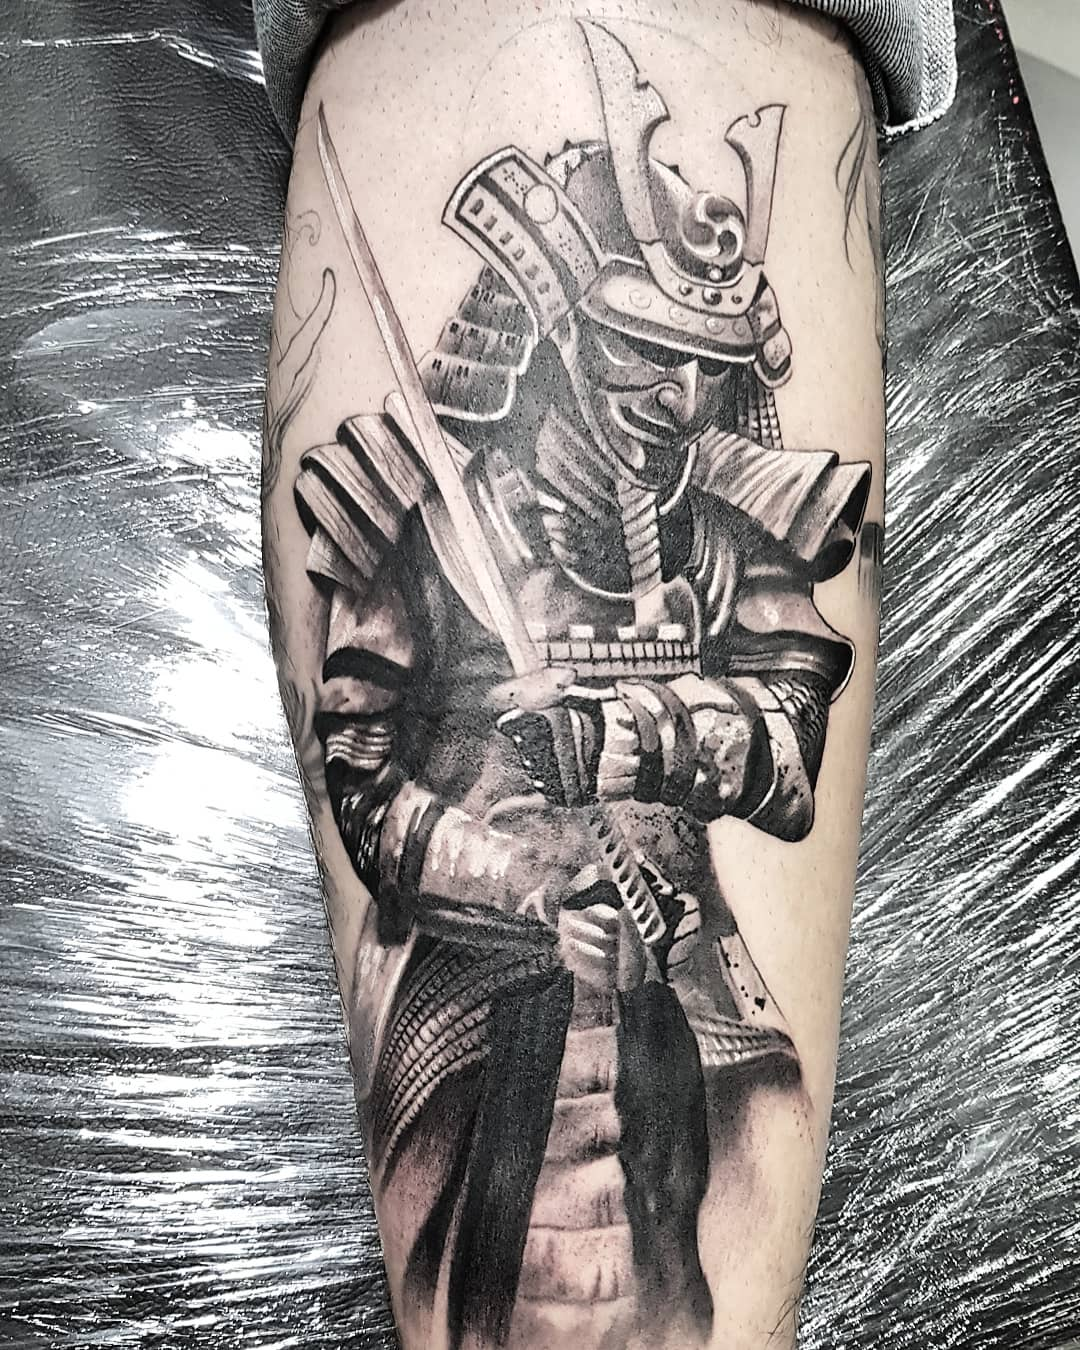 Sexy Tattoos For Guys In The Back And Ribs Determinetattoo